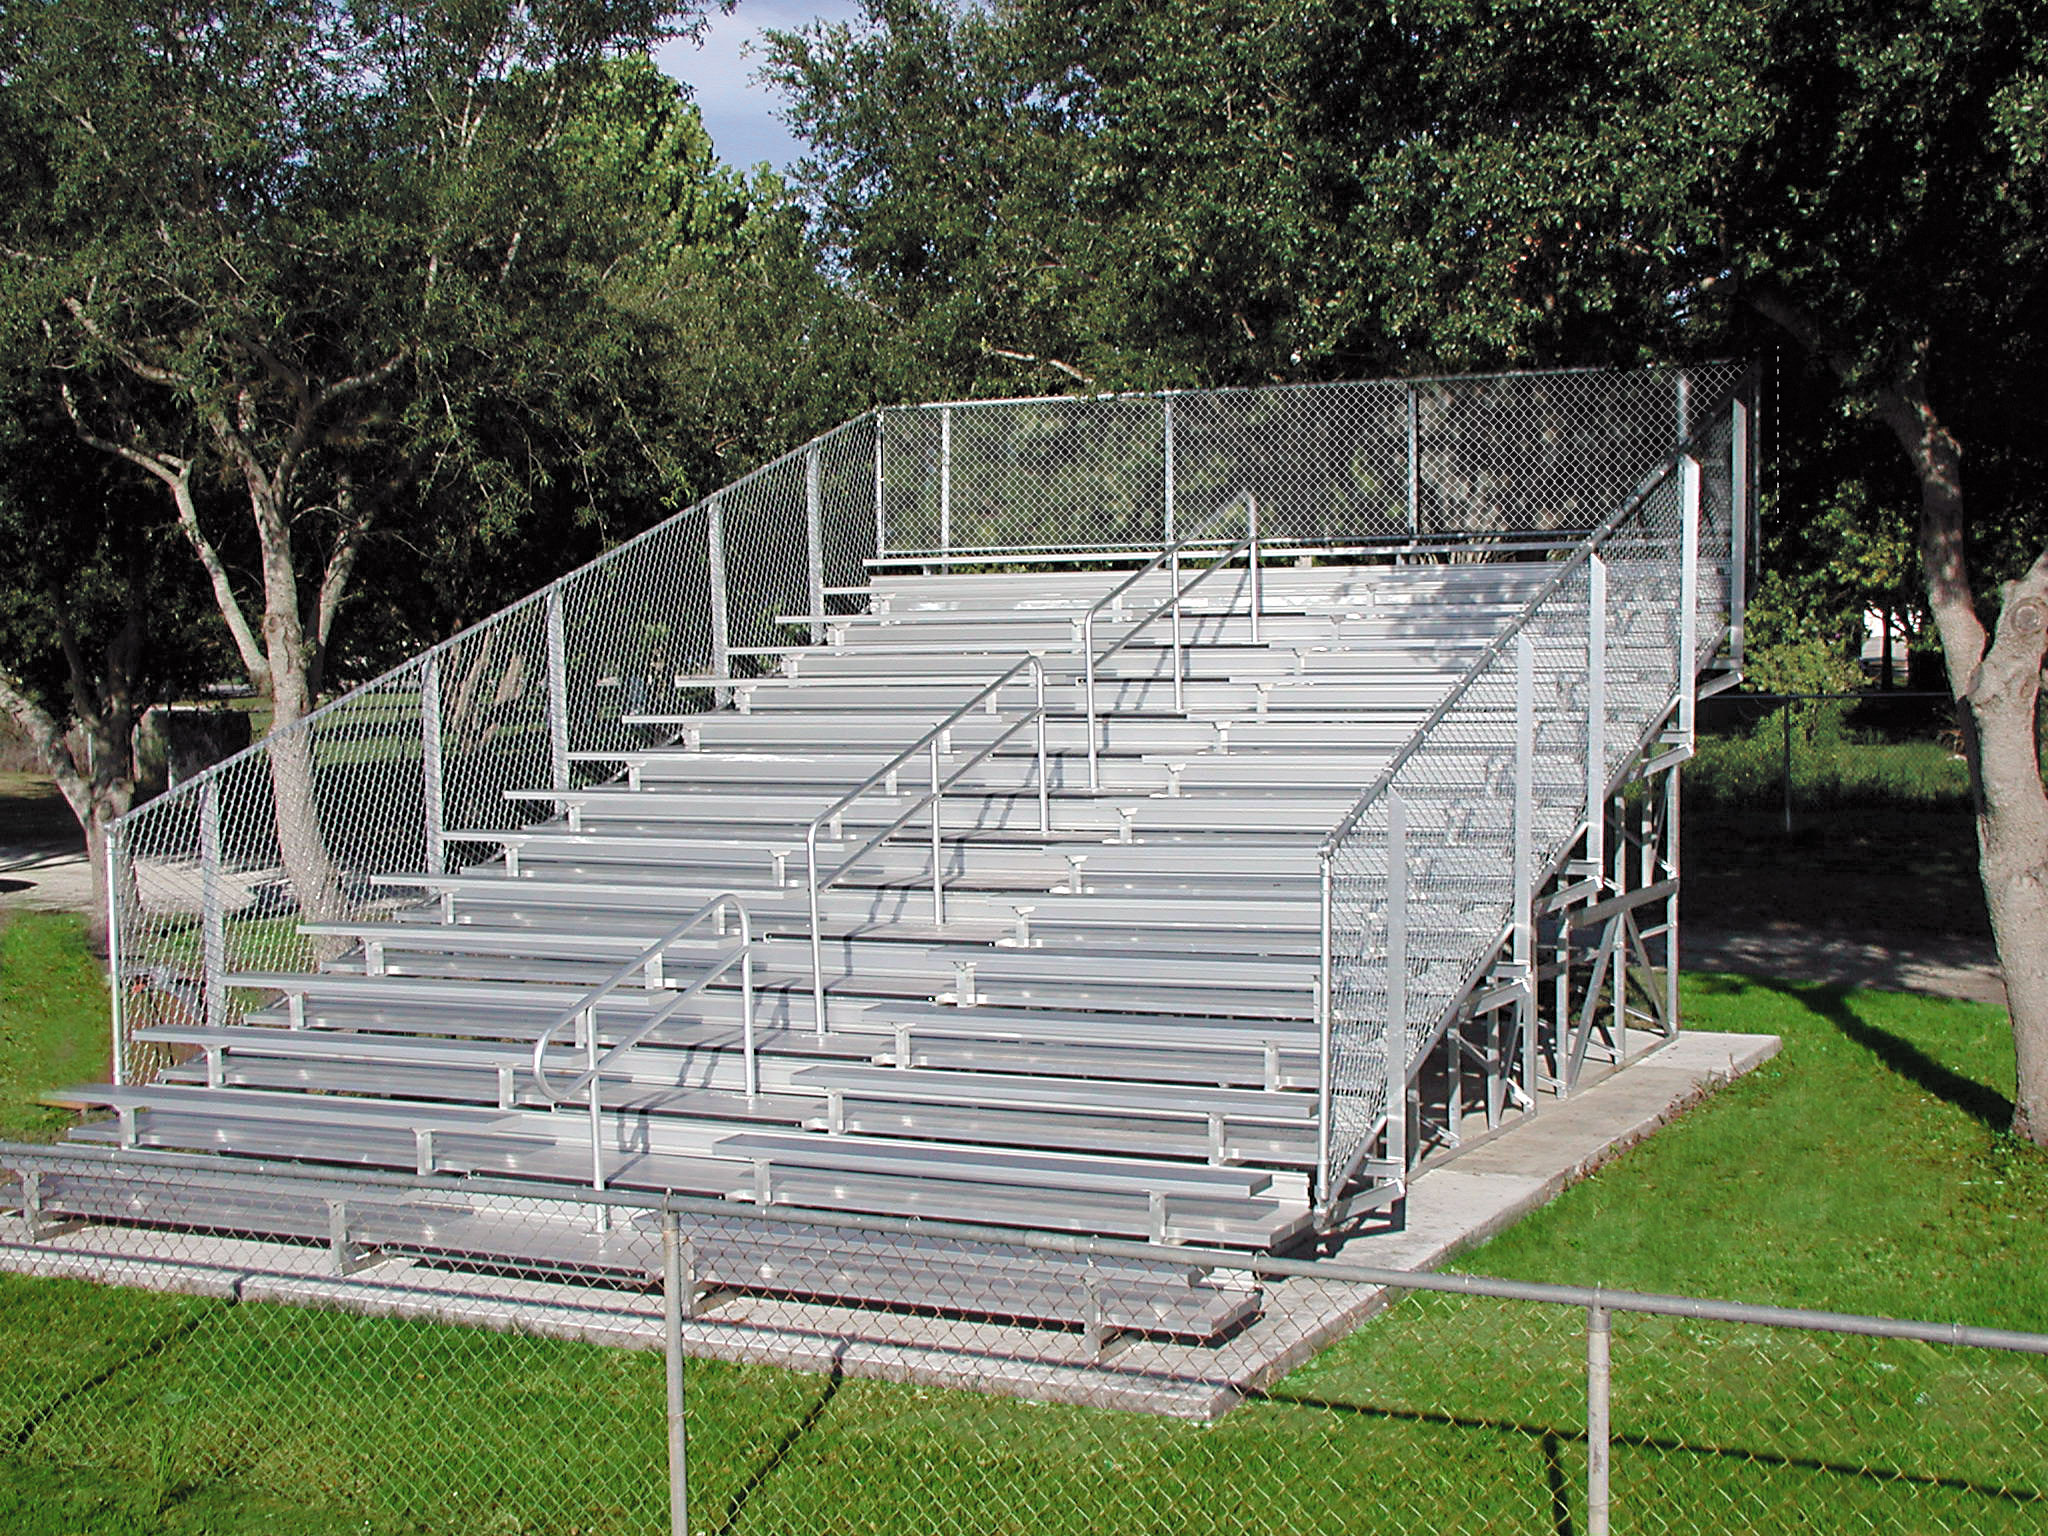 15 Row Portable Bleachers Series w/ Chainlink Guardrails & Aisle, Double Footboards and Aluminum Frame